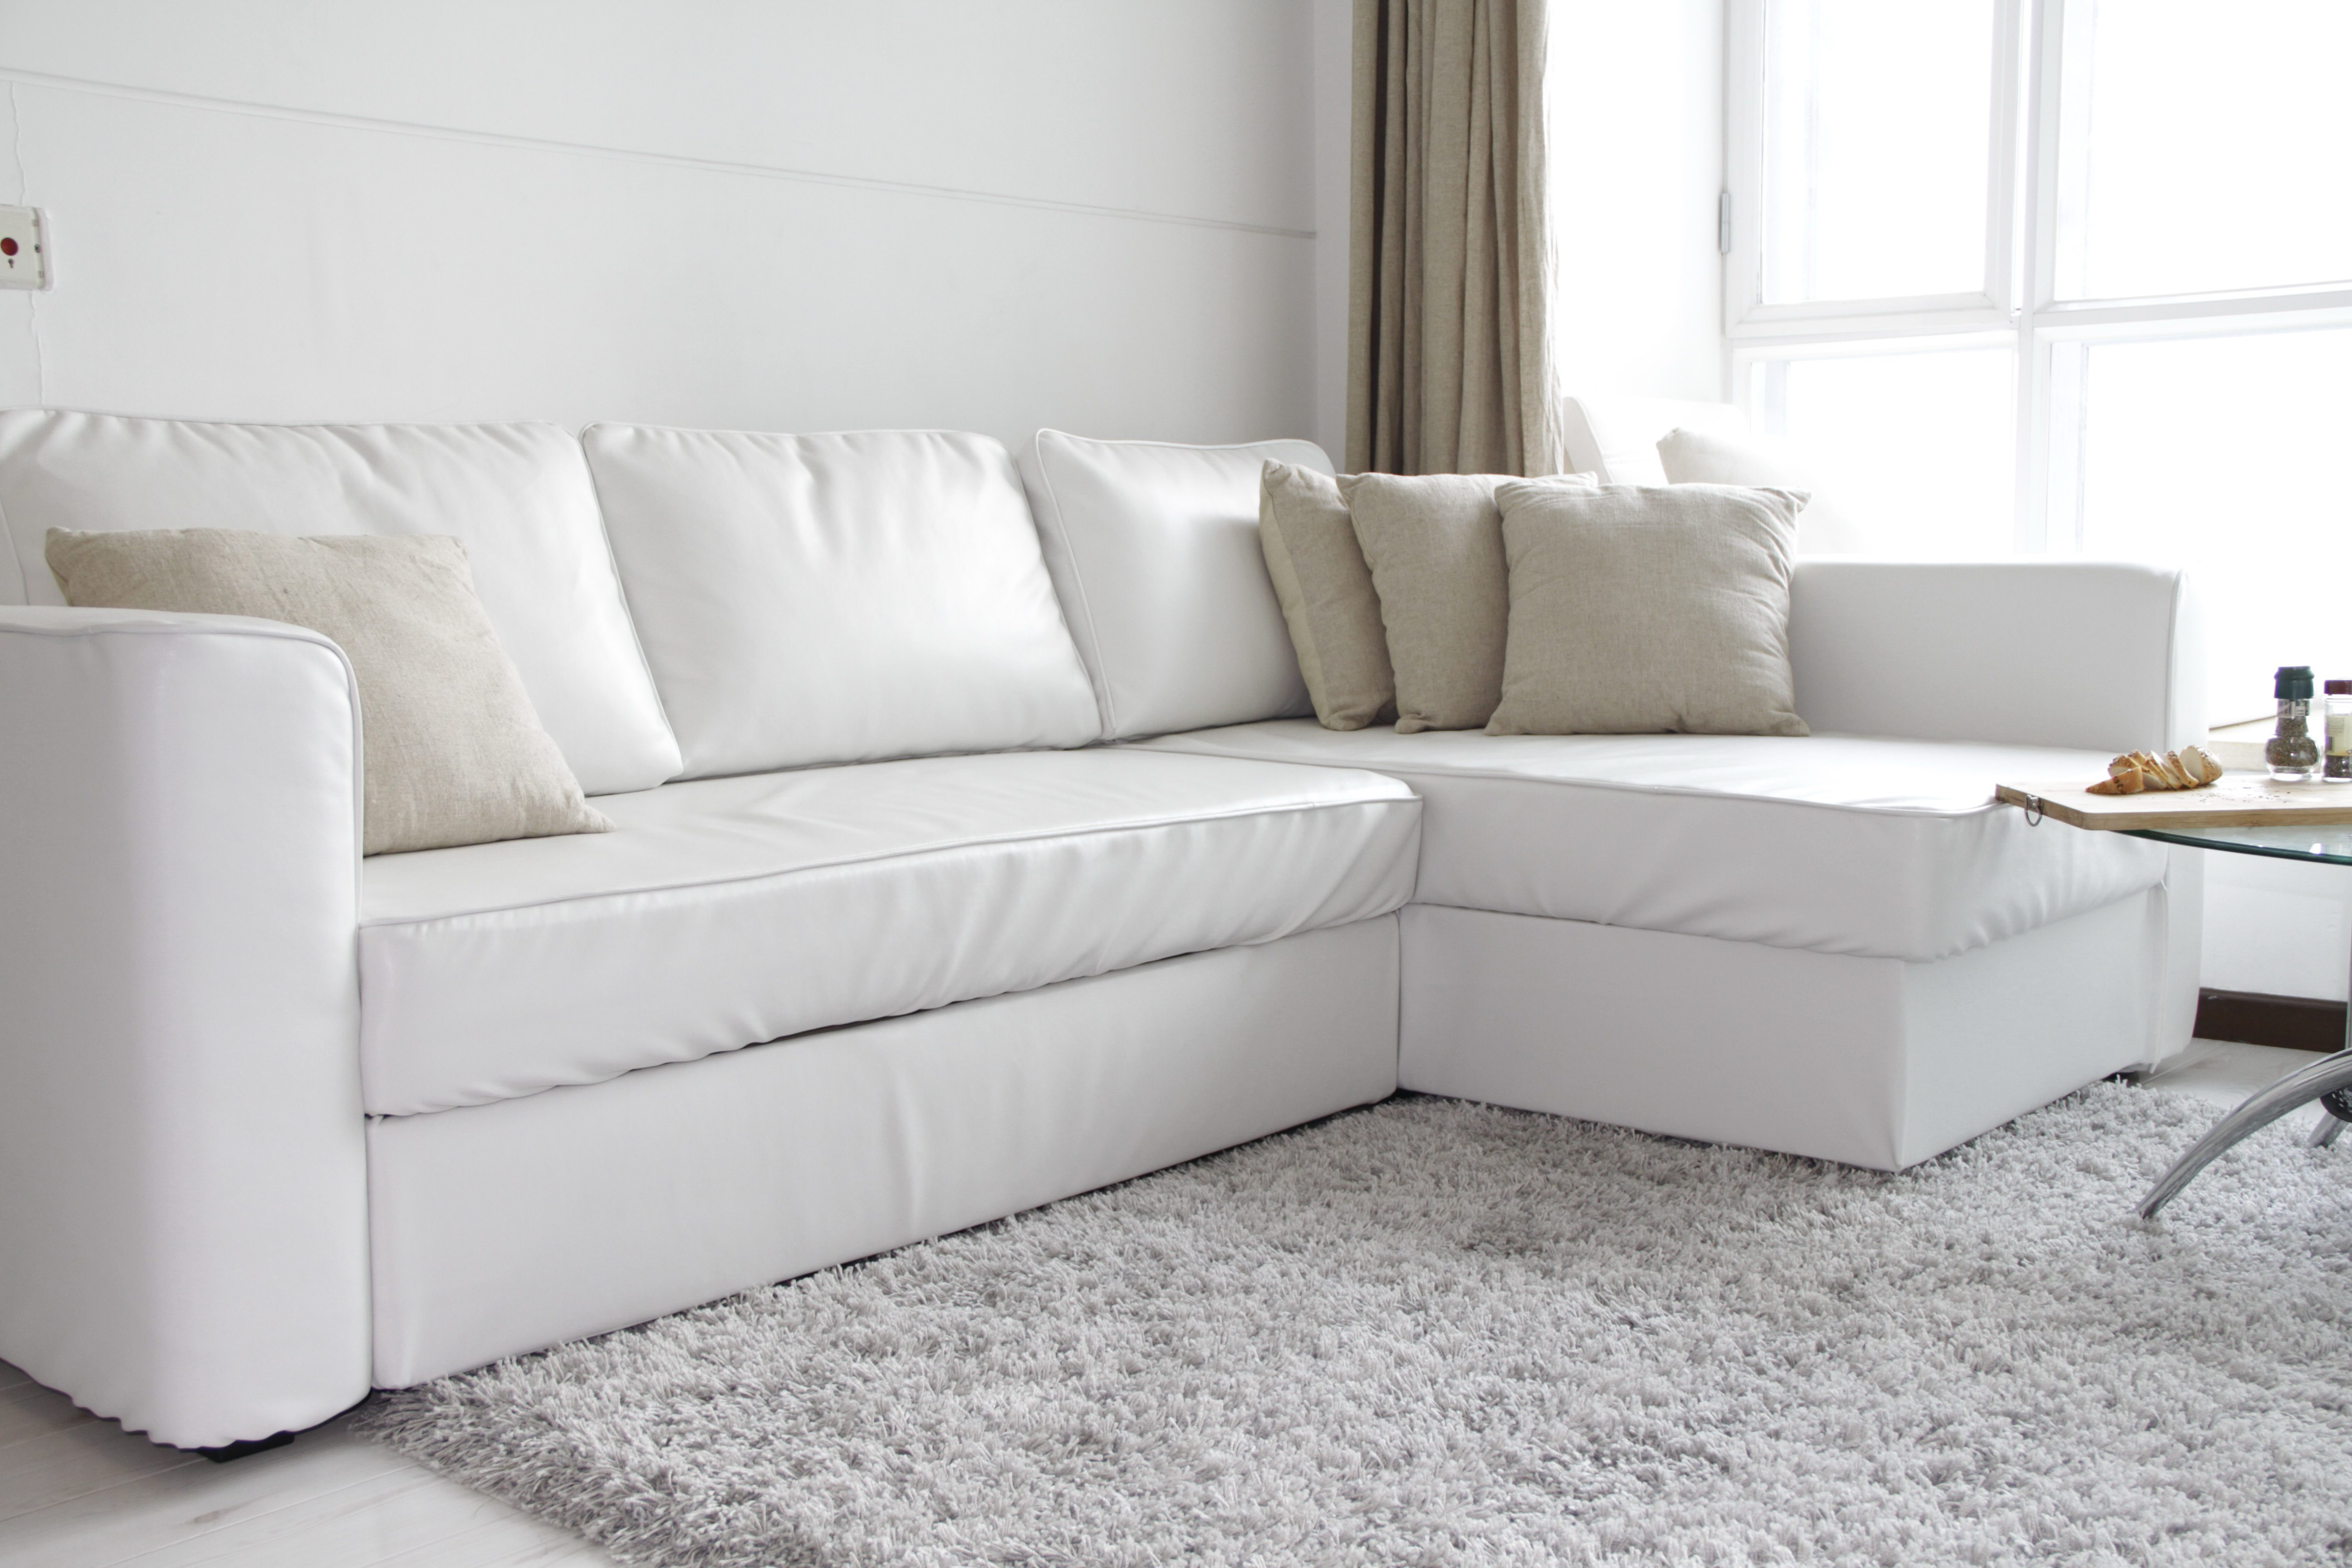 ikea couch sofa sectional manstad wayfair full size sleeper guide to buying or fagelbo comfort works slipcover snug fit modena white